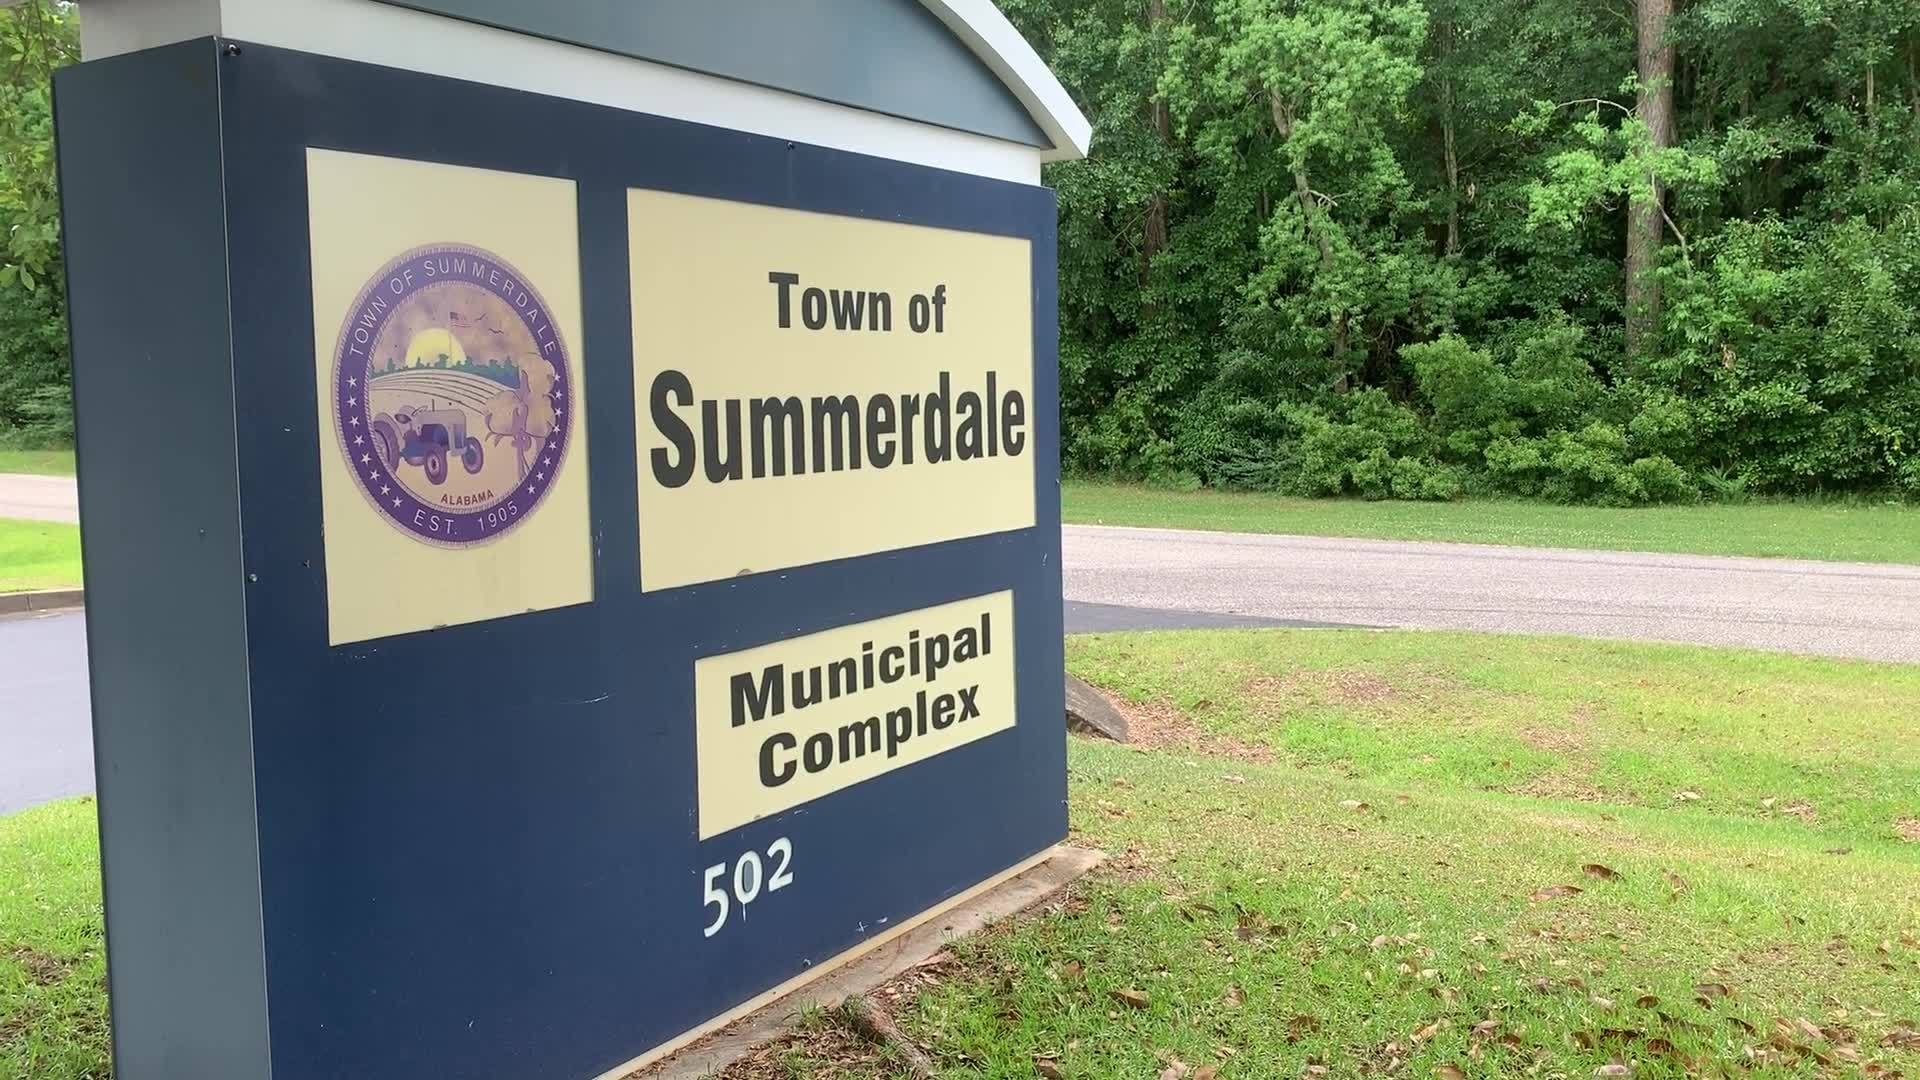 Have a cup of coffee with Summerdale PDWednesday